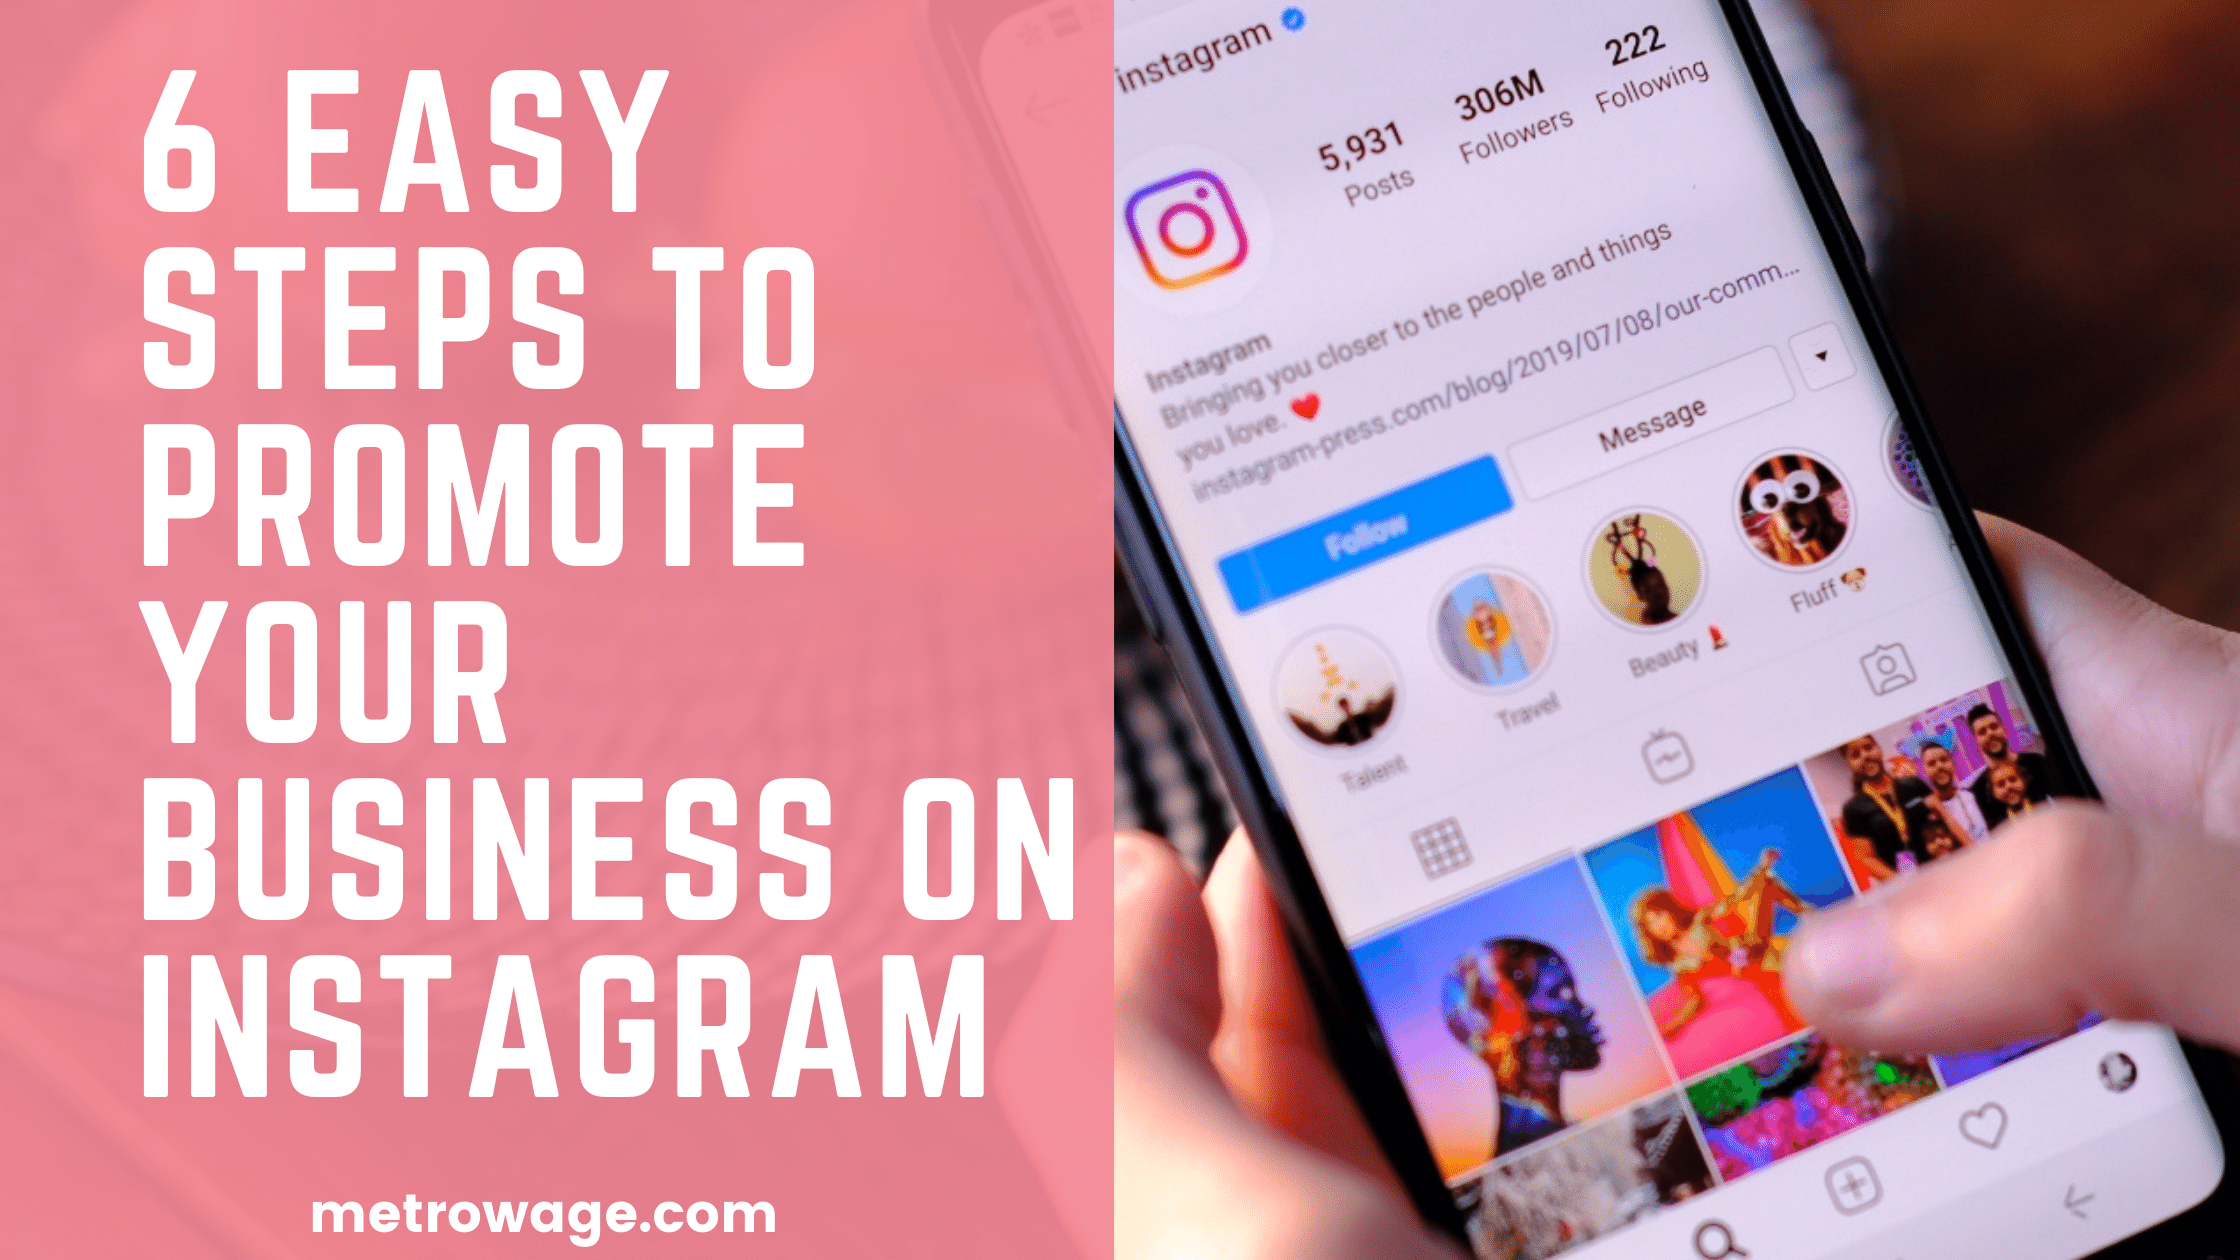 6 Easy Steps to Promote your Business on Instagram